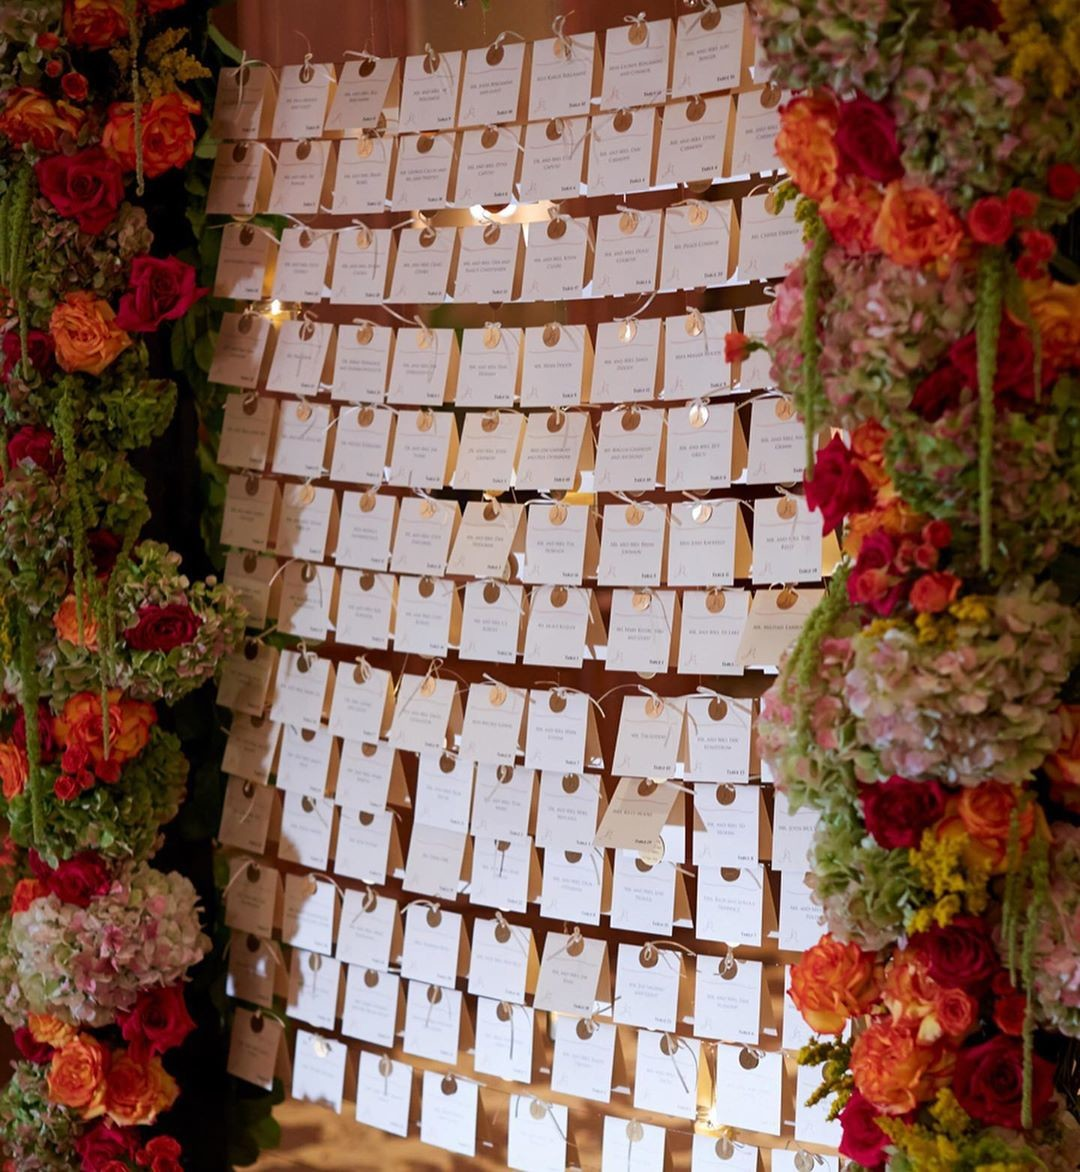 It is always such a pleasure + privilege to be a part of a creative team throughout a planning journey. This escort card display came